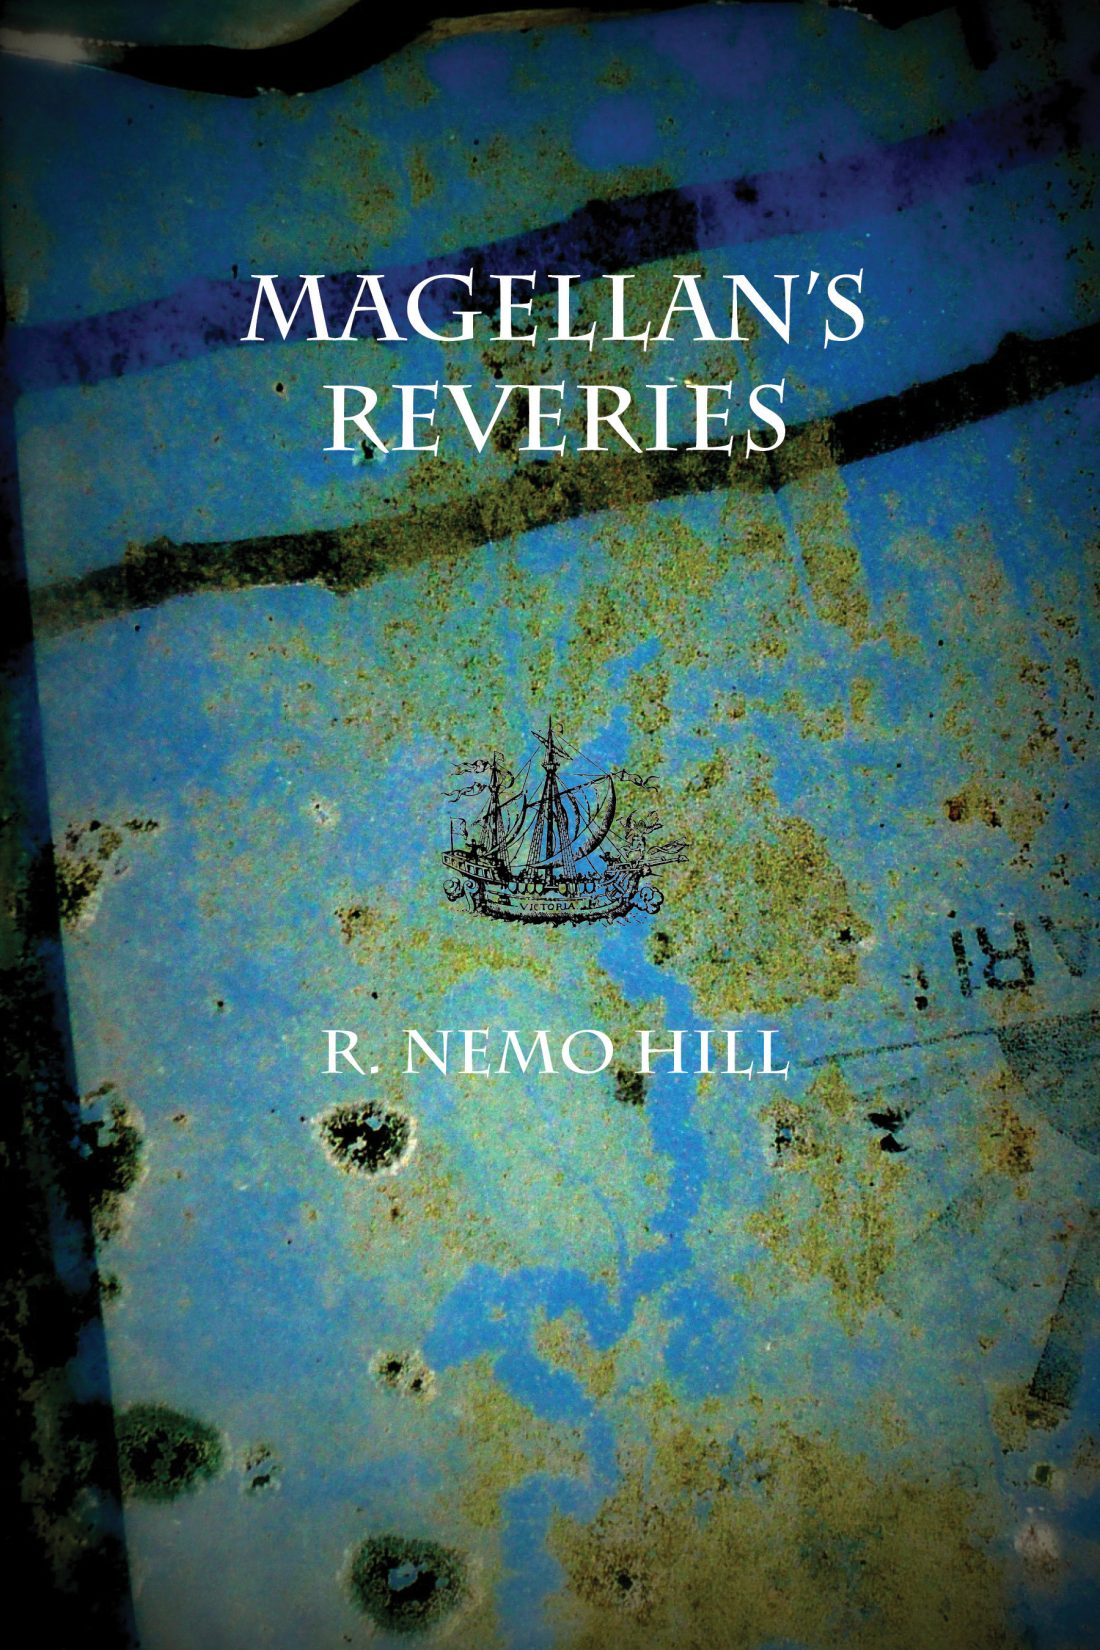 Magellan's Reveries by R. Nemo Hill